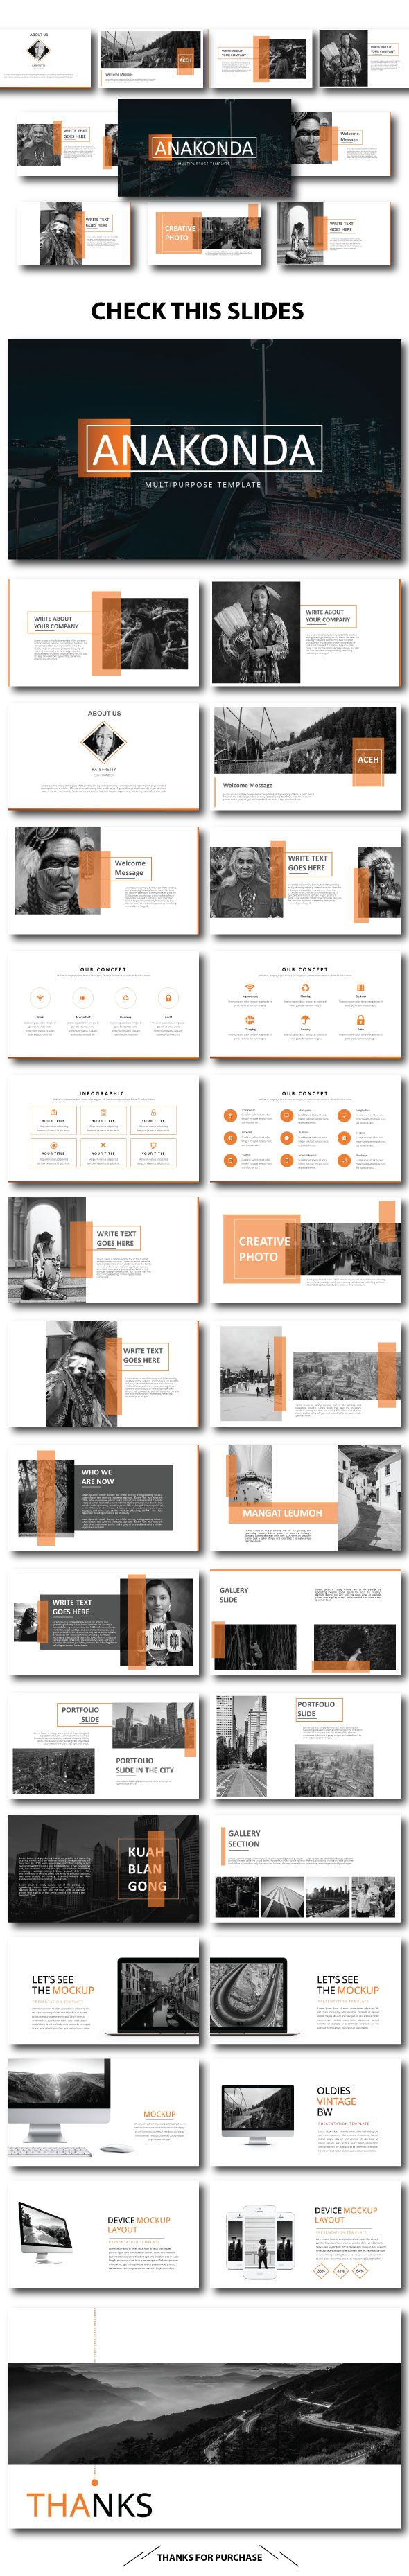 Anakonda Keynote Template — Keynote KEY #swot analysis #social media • Available here → https://graphicriver.net/item/anakonda-keynote-template/20770158?ref=pxcr